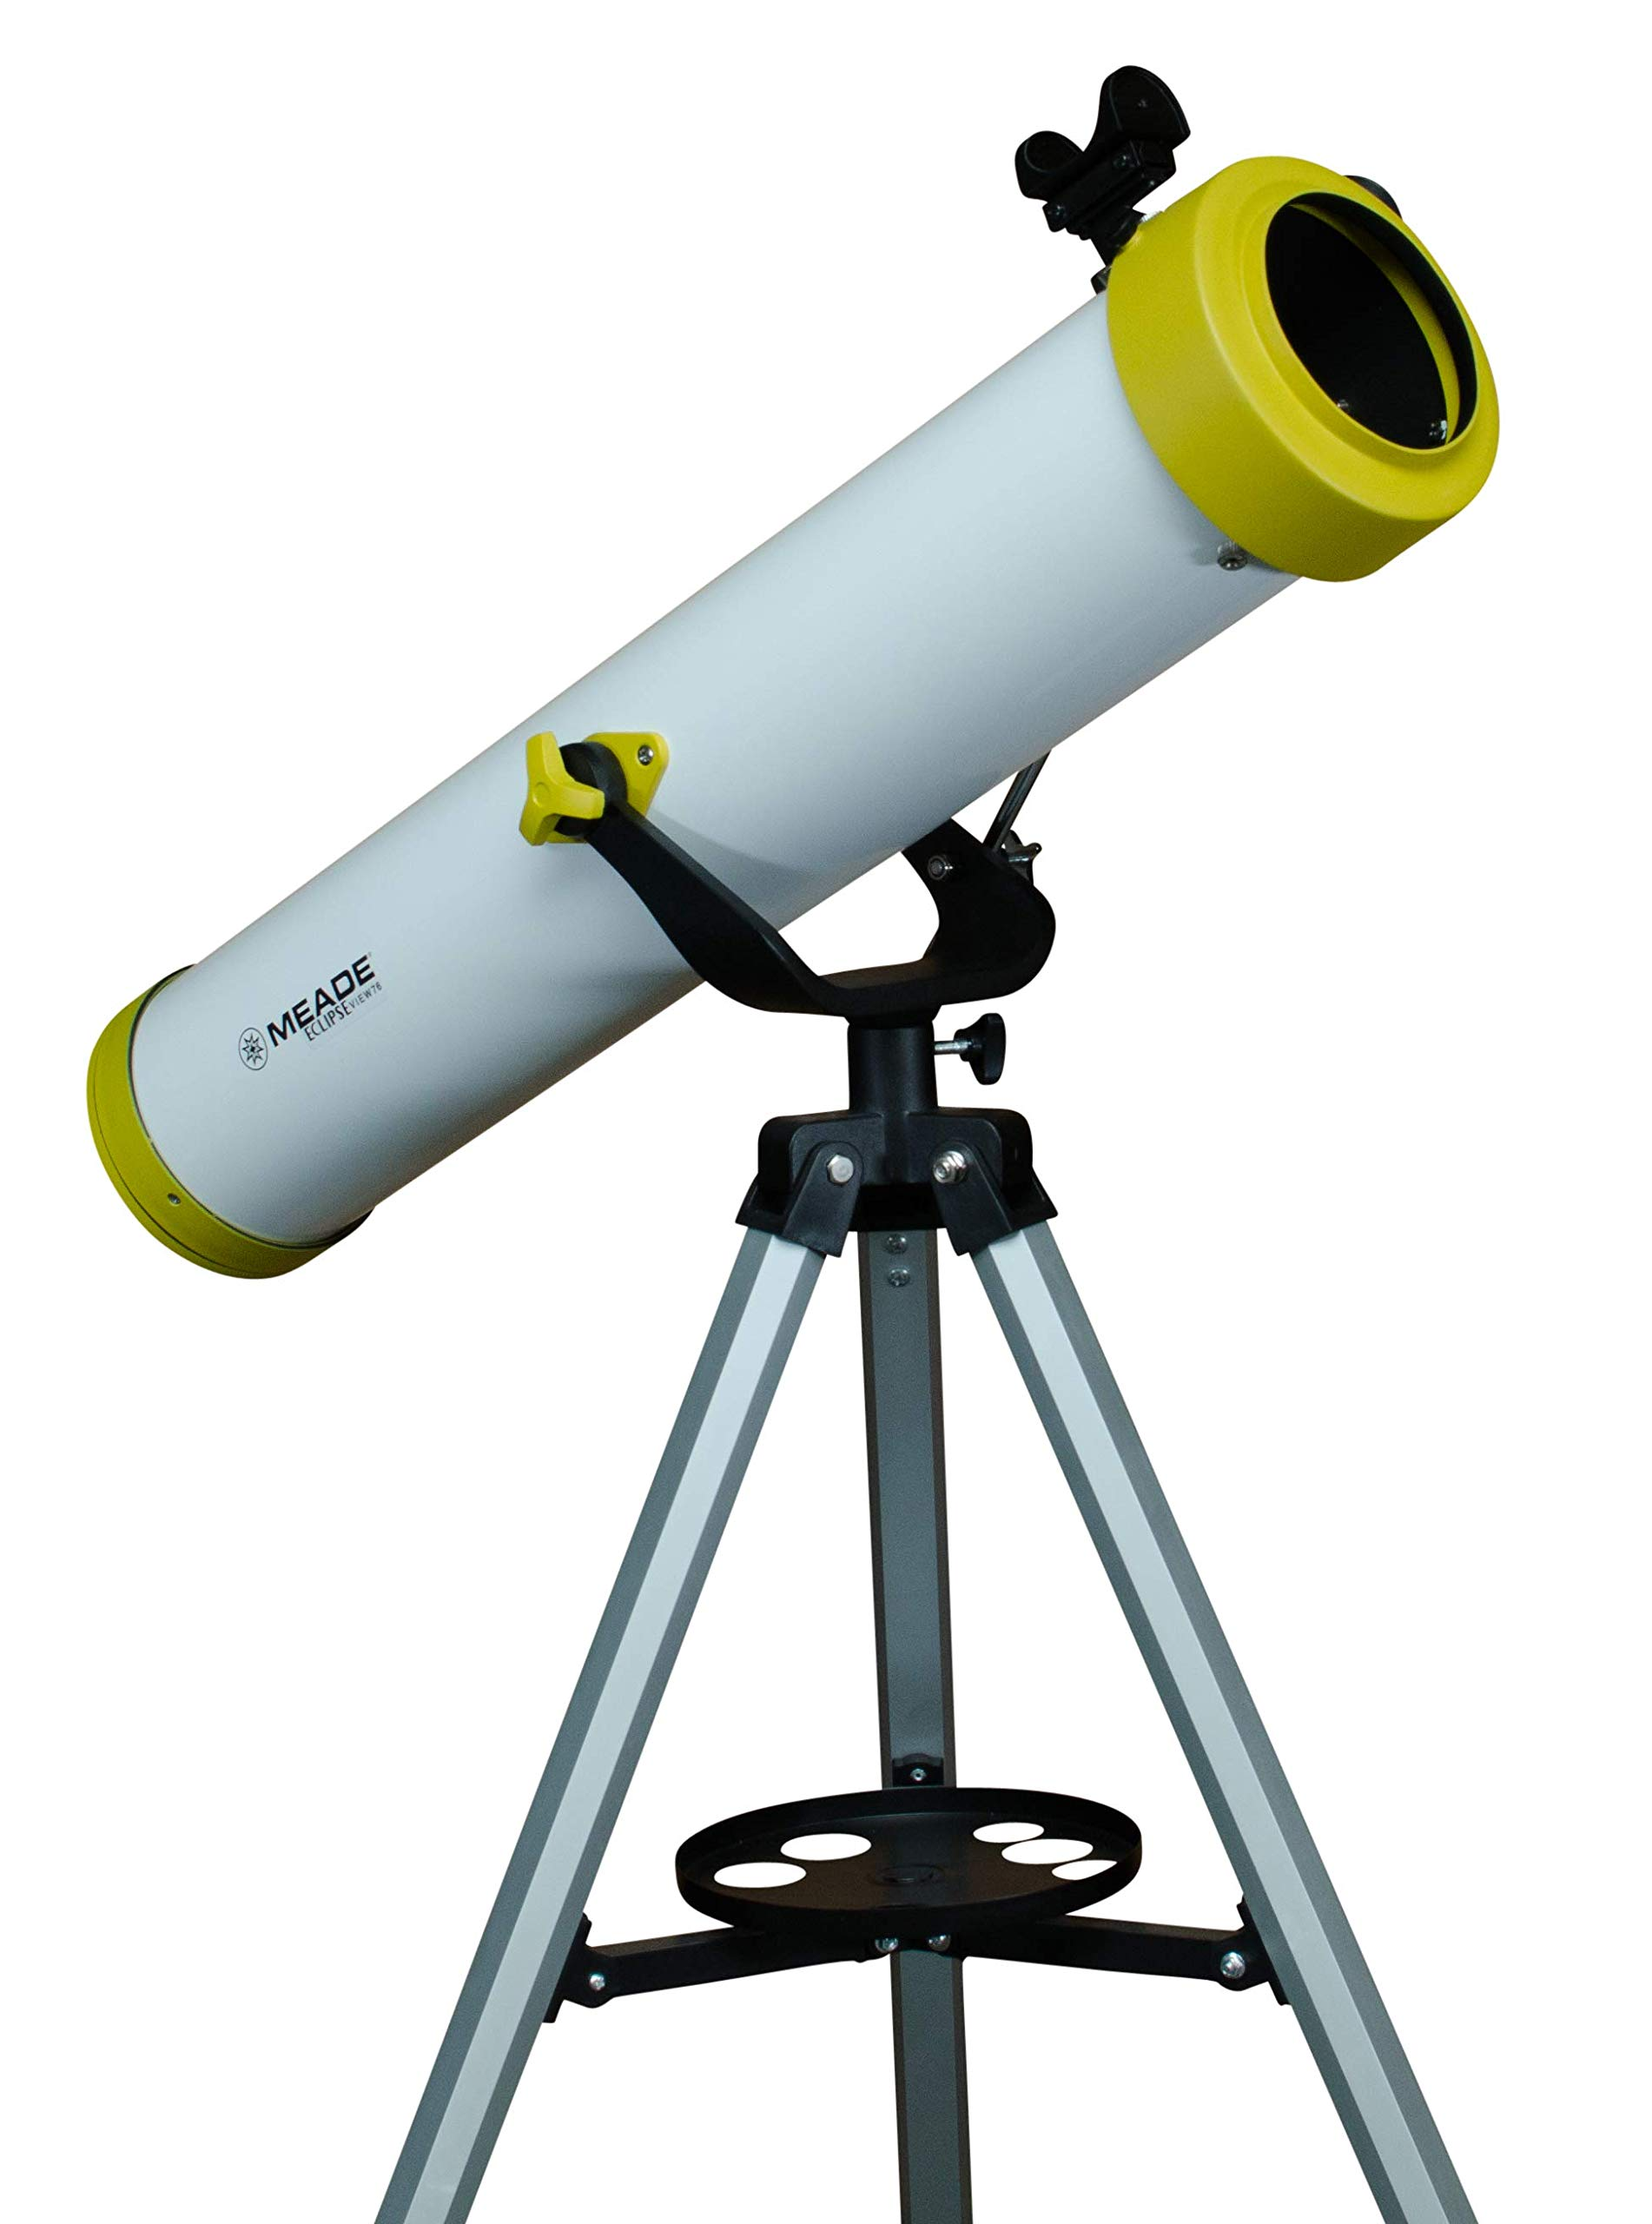 Meade Instruments Day and Night Telescope-227003 EclipseView 76mm Reflecting Telescope with Removable Filter by Meade Instruments